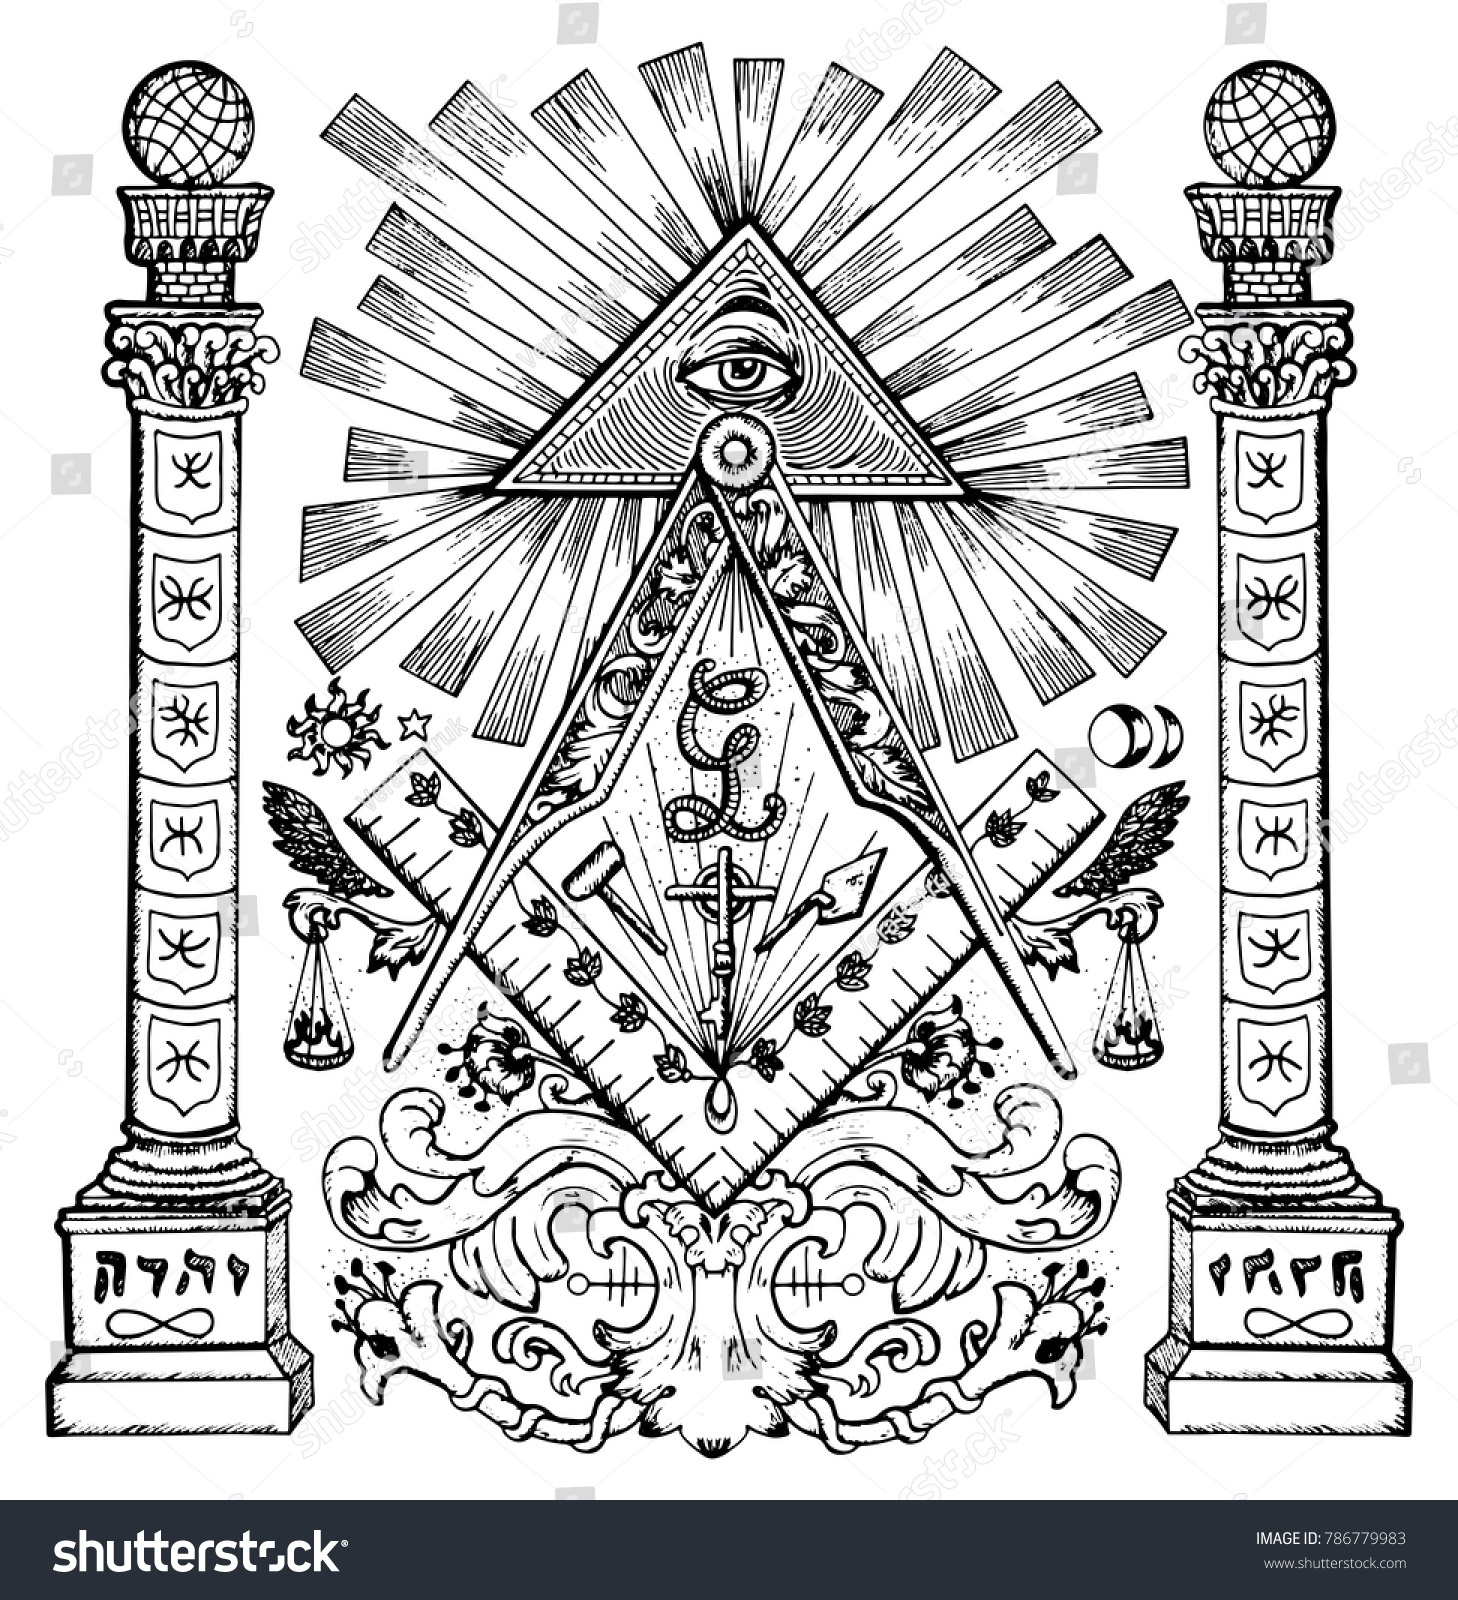 Graphic Illustration With Mason Mysterious Symbols Freemasonry And